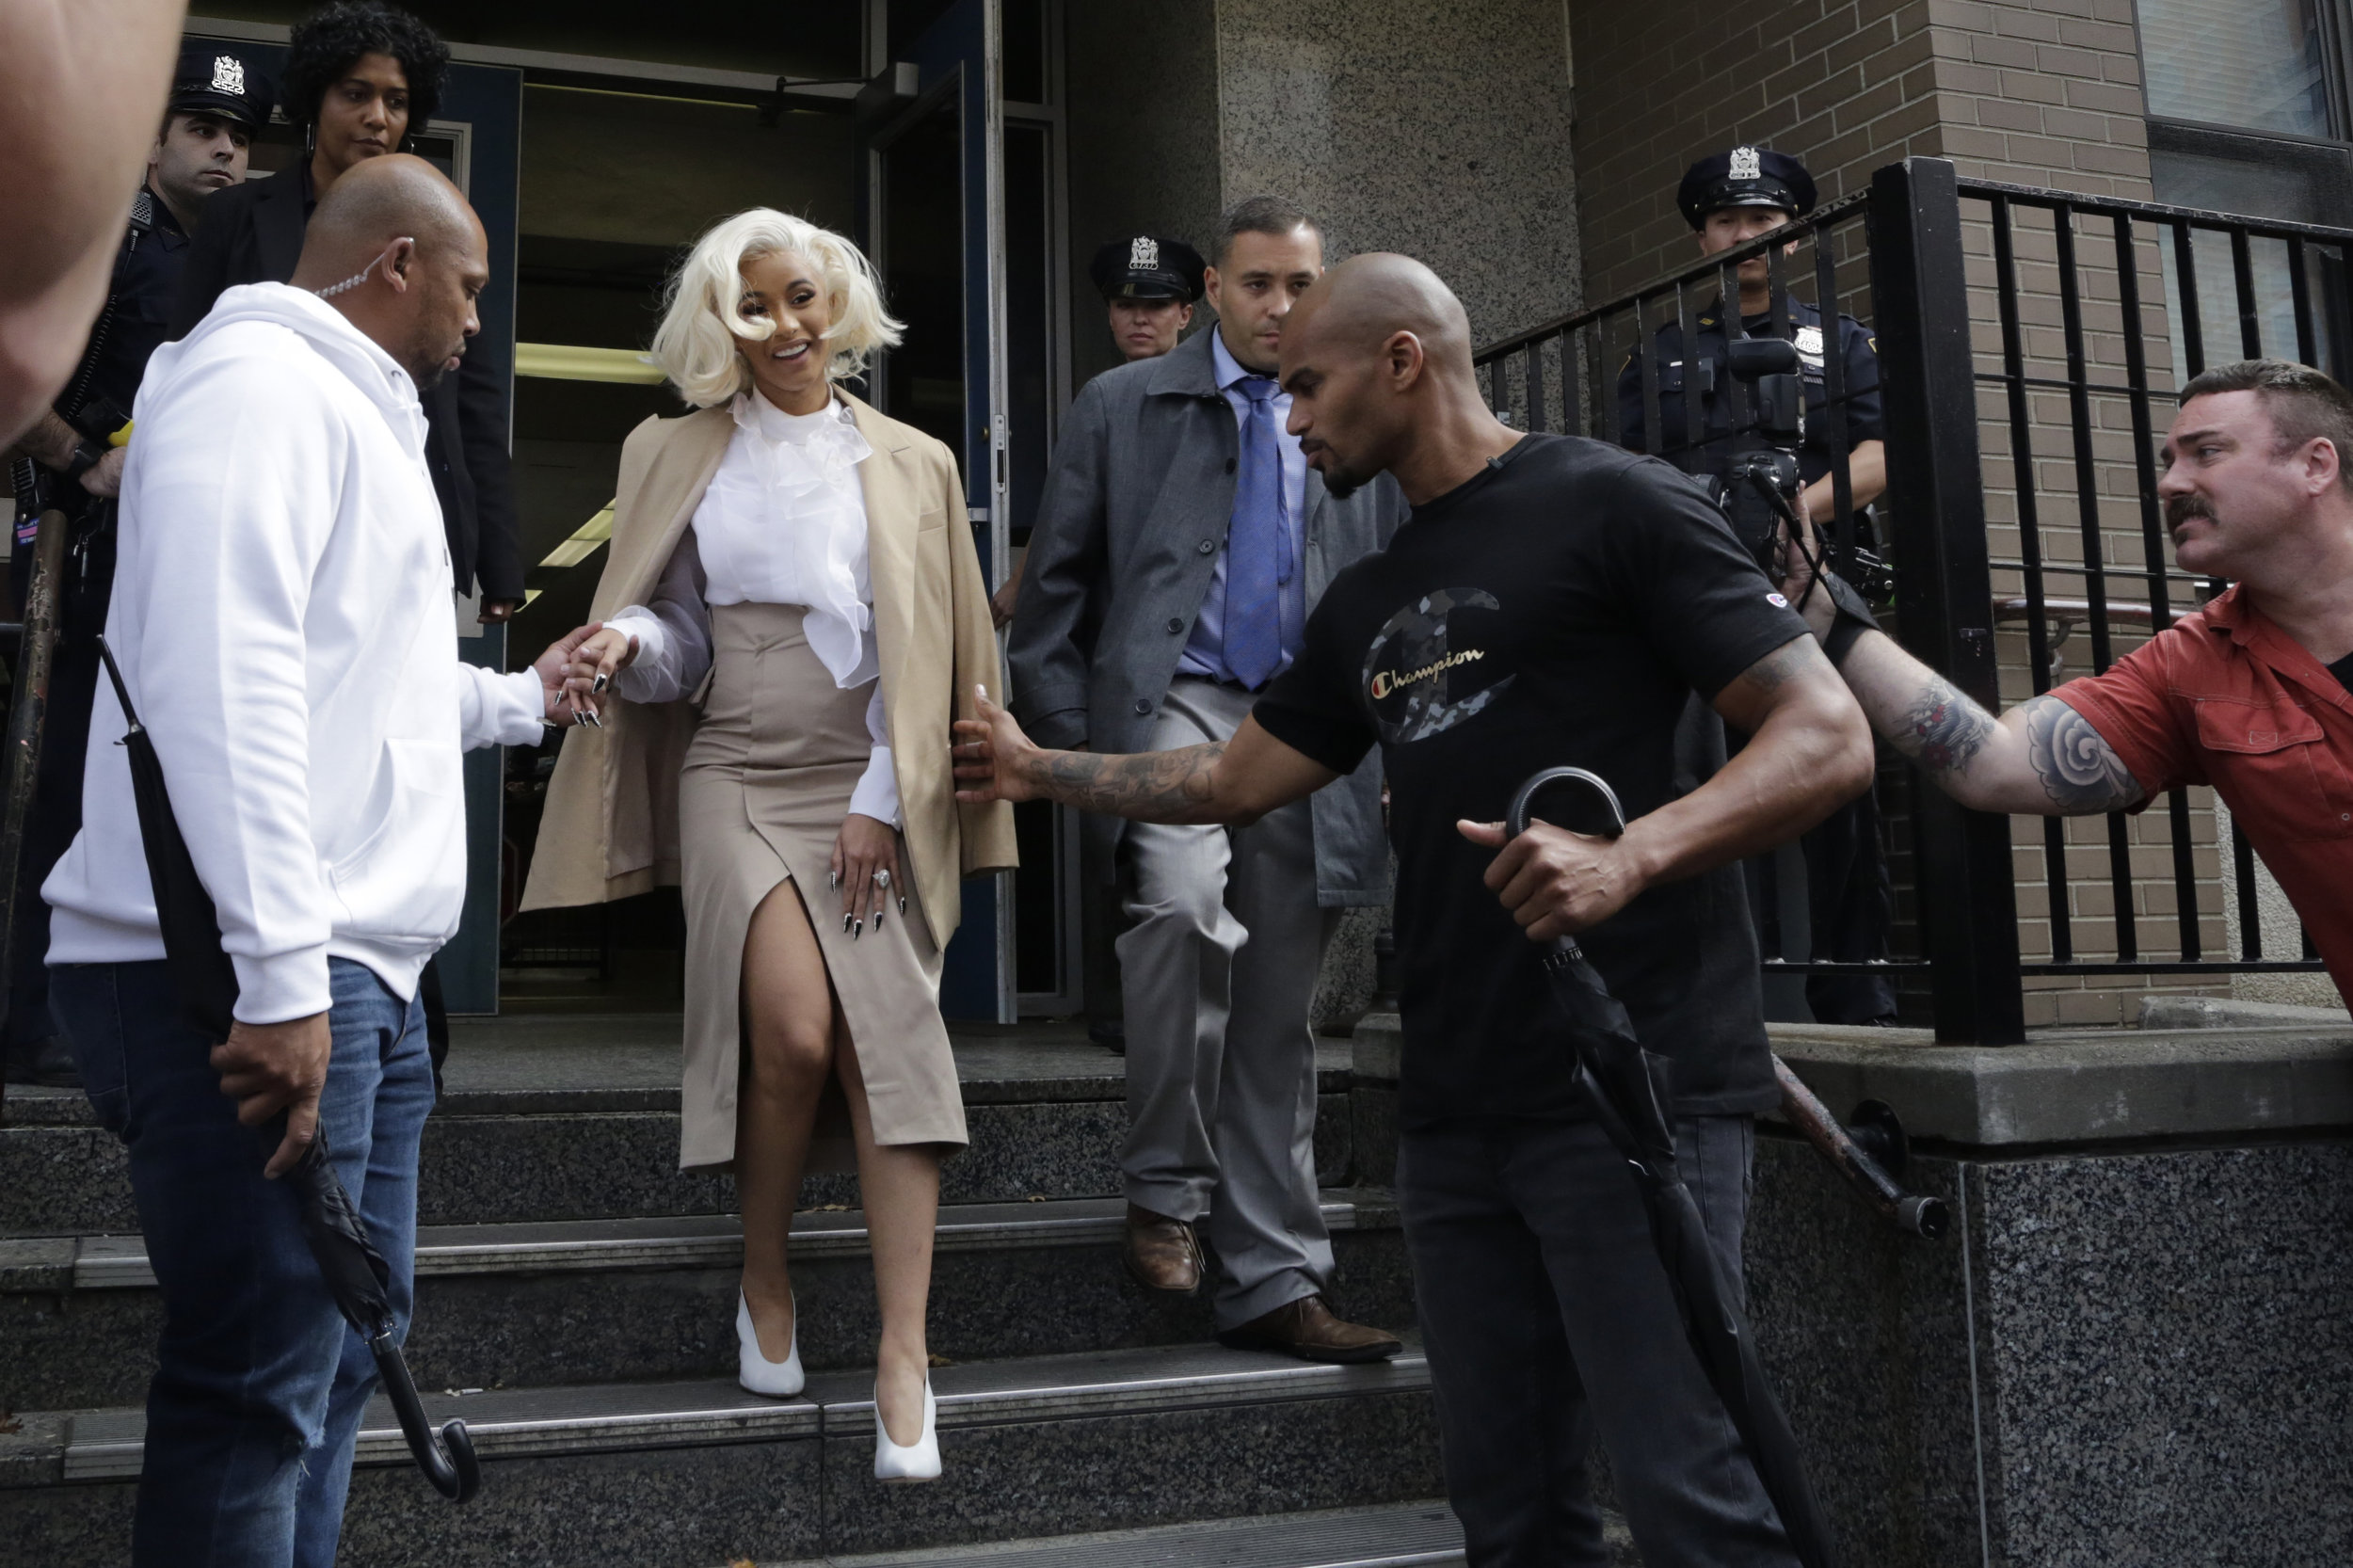 Cardi B leaves a Flushing police precinct after being charged with reckless endangerment. She will appear in Queens Criminal Court on Oct. 29. AP Photo.